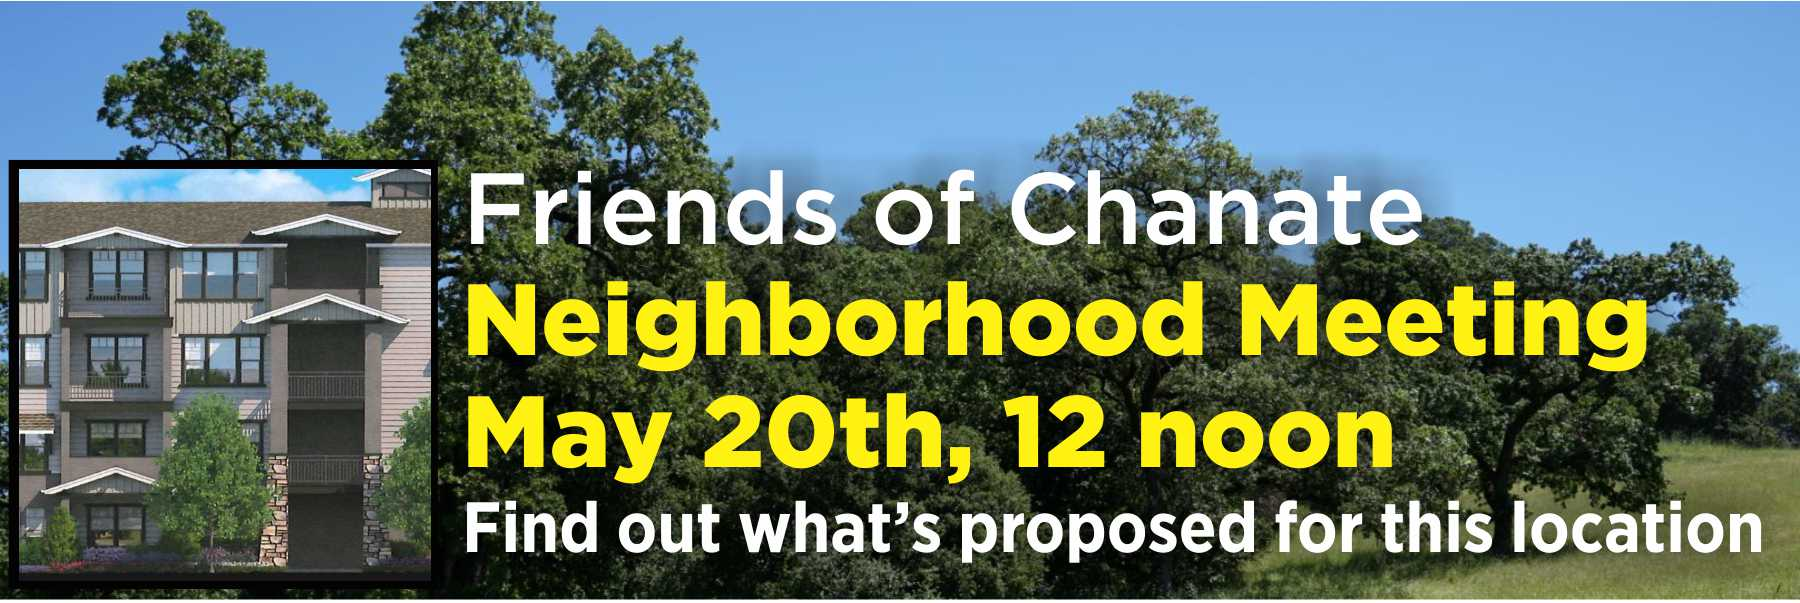 Don't Miss It! – Neighborhood Meeting, May 20th  Find out what's happening with the old Community Hospital/Sutter Hospital Chanate location at our neighborhood meeting on Sunday, May 20th, from Noon to 2 p.m. at Hidden Valley School. All are welcome!  The process is moving fast (the developer has now filed papers with Santa Rosa!) – you need to know what's proposed now so you can stay informed and influence the final development.   Knowledge is power. If you don't know what's happening, you may not be happy with the result.   · We'll update you on our lawsuit.  · We'll show you large pictures of the 867 high density apartments the applicant is proposing for the site.  · We'll let you know the process the proposed project will follow.  · We'll let you know how to make sure that you stay informed.  · We'll answer your questions.   Don't miss this chance to find out what's really going on!   We are not opposed to development at this location, but we are very worried about what kind of development will happen, and how all of us will be able to evacuate in the event of another disaster.  We are fighting hard to win our lawsuit against the County, which would require this process to start over, but we all need to stay informed of everything else that is going on, particularly now that the developer has filed papers with Santa Rosa to start the project.  To find out as much as we know, attend the Friends of Chanate Neighborhood Meeting on Sunday, May 20th from Noon to 2 p.m. at Hidden Valley School, 3435 Bonita Vista Dr., Santa Rosa – right off of Chanate Road.  RSVPs to  FriendsOfChanate@sonic.net  appreciated.  Your continued support is critical to our success.   Please make a tax-deductible contribution today to help us succeed!     We all deserve a County Government that is working for us, and is not giving valuable property away far too cheaply.   Please visit  www.FriendsOfChanate.org  to make a secure, tax deductible deposit, or donate securely on our Facebook page.